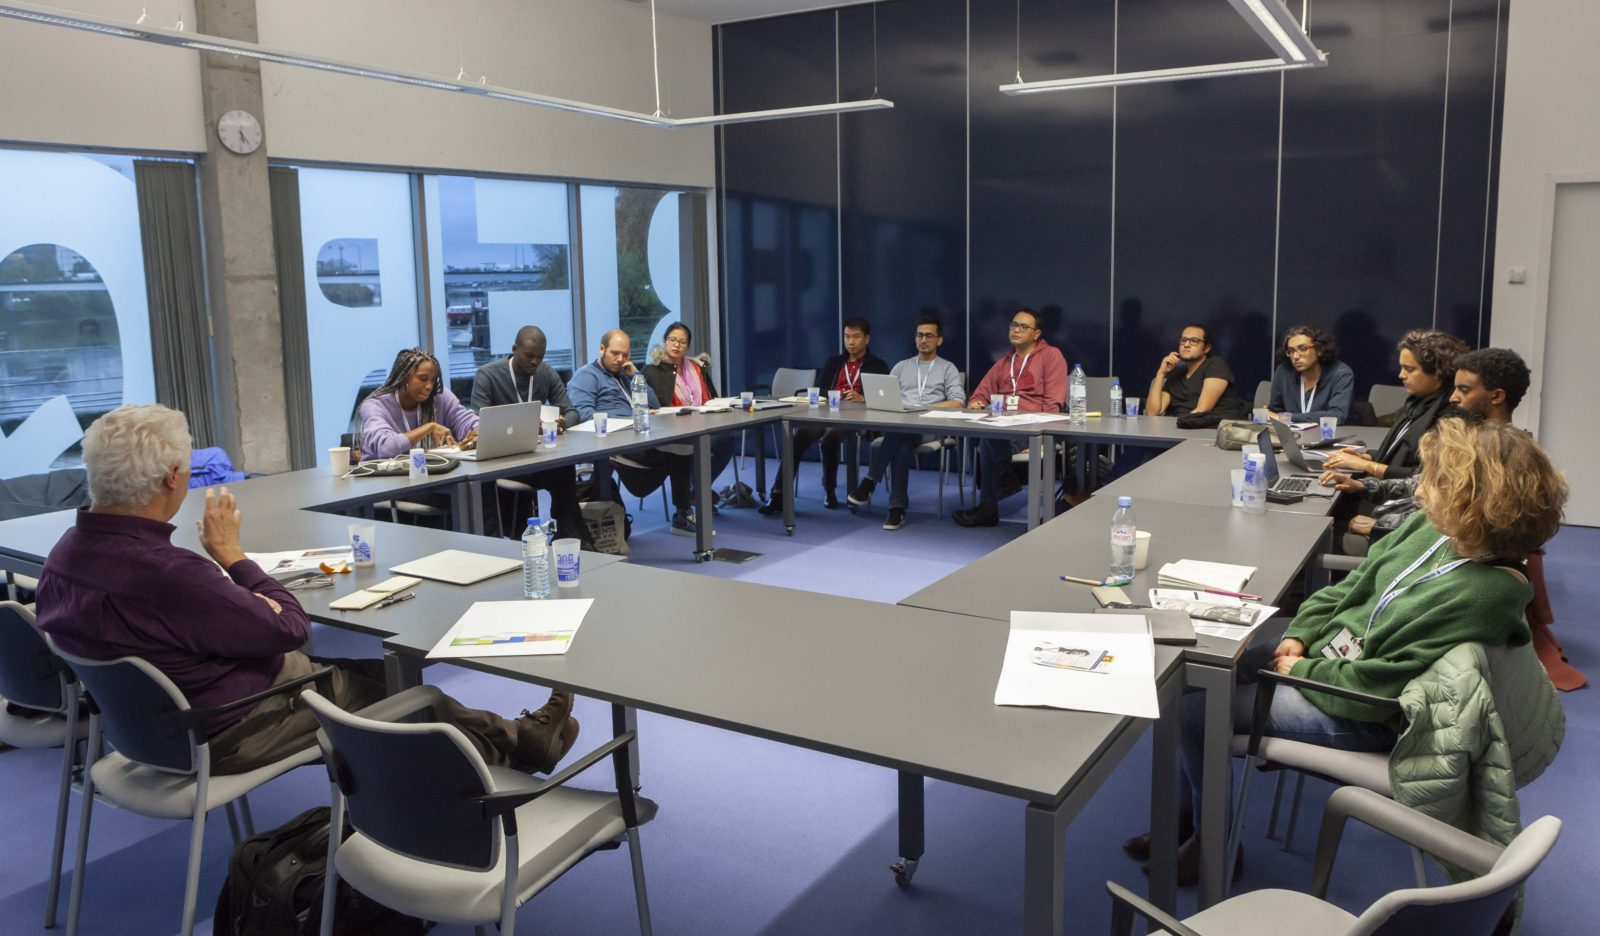 Work session at the Institute for advanced study